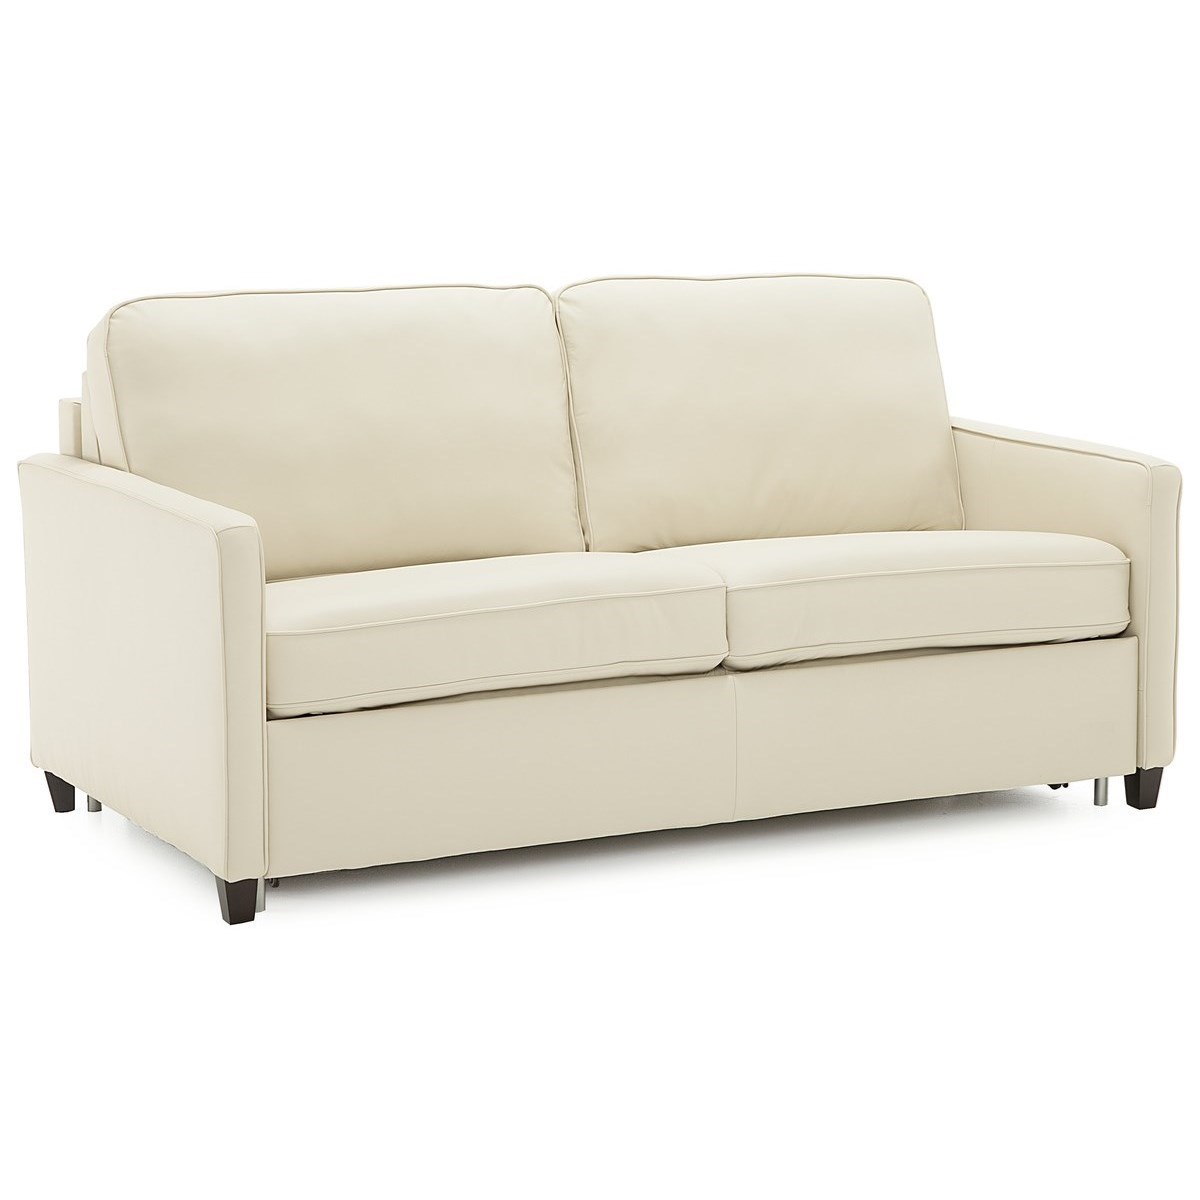 Palliser California Contemporary Sofa Sleeper With Heat Control Double  Mattress